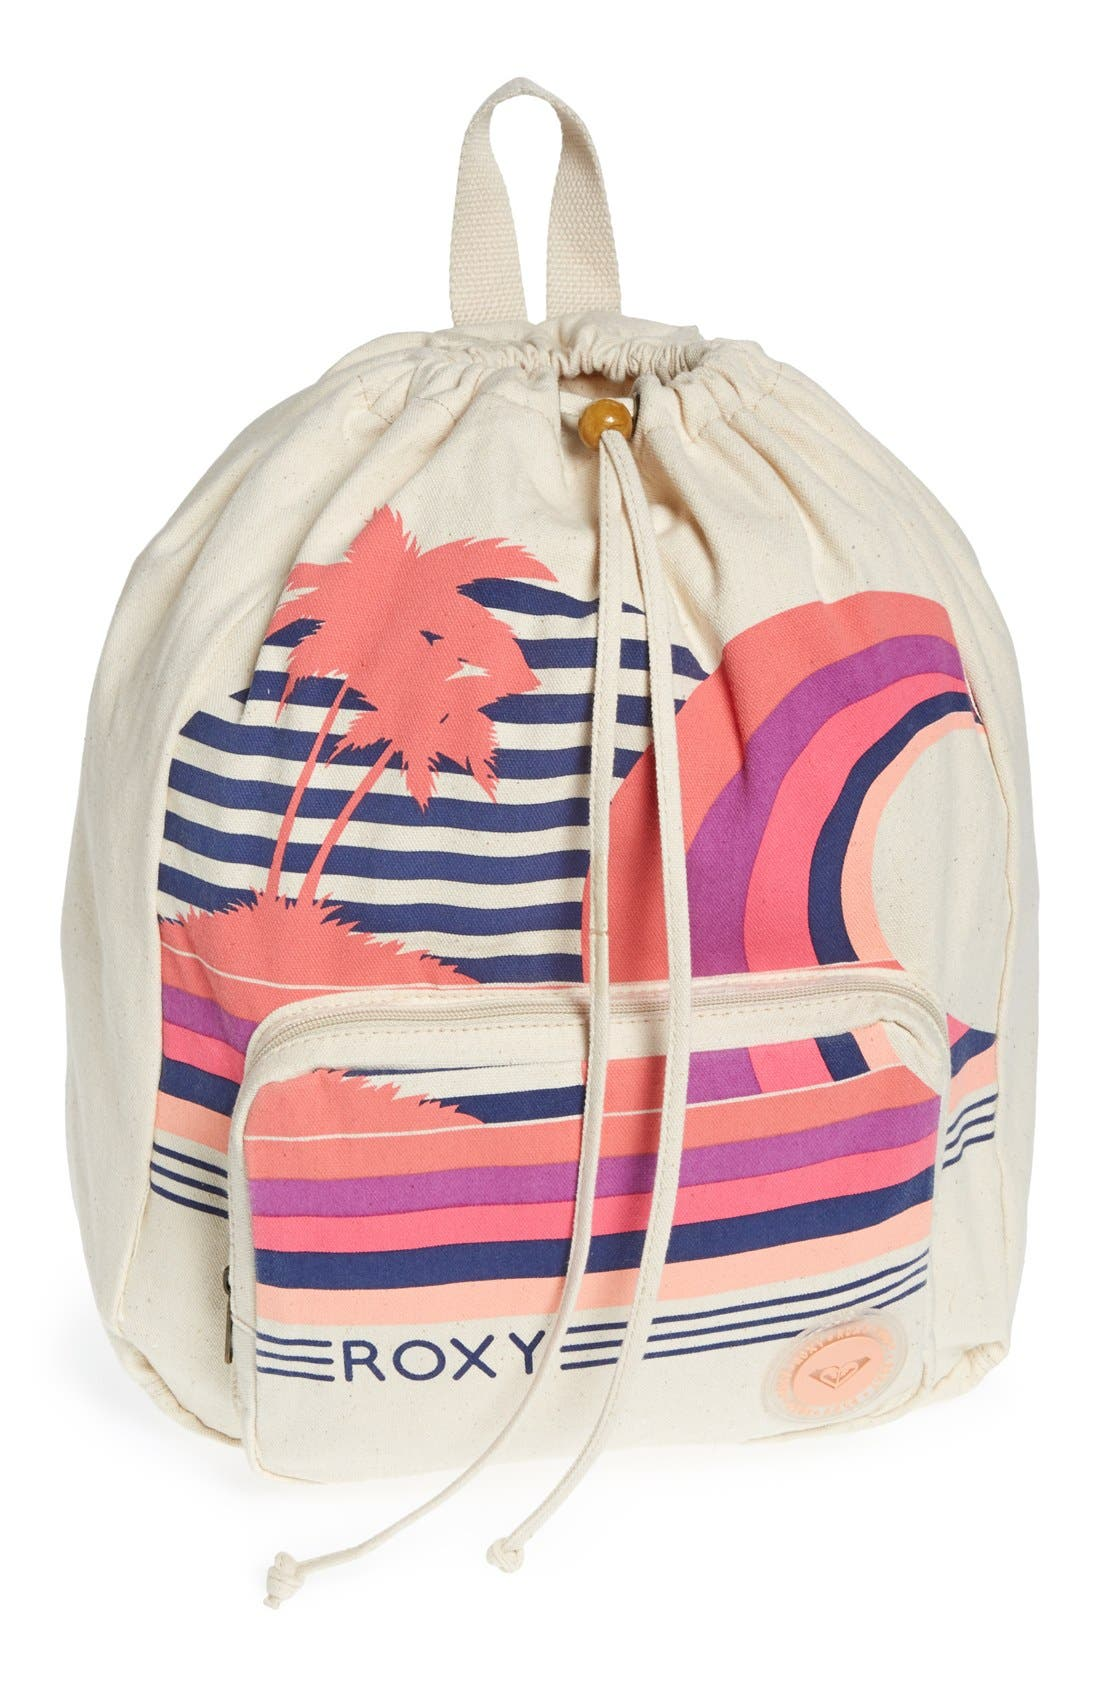 Alternate Image 1 Selected - Roxy 'Flybird' Drawstring Backpack (Girls)